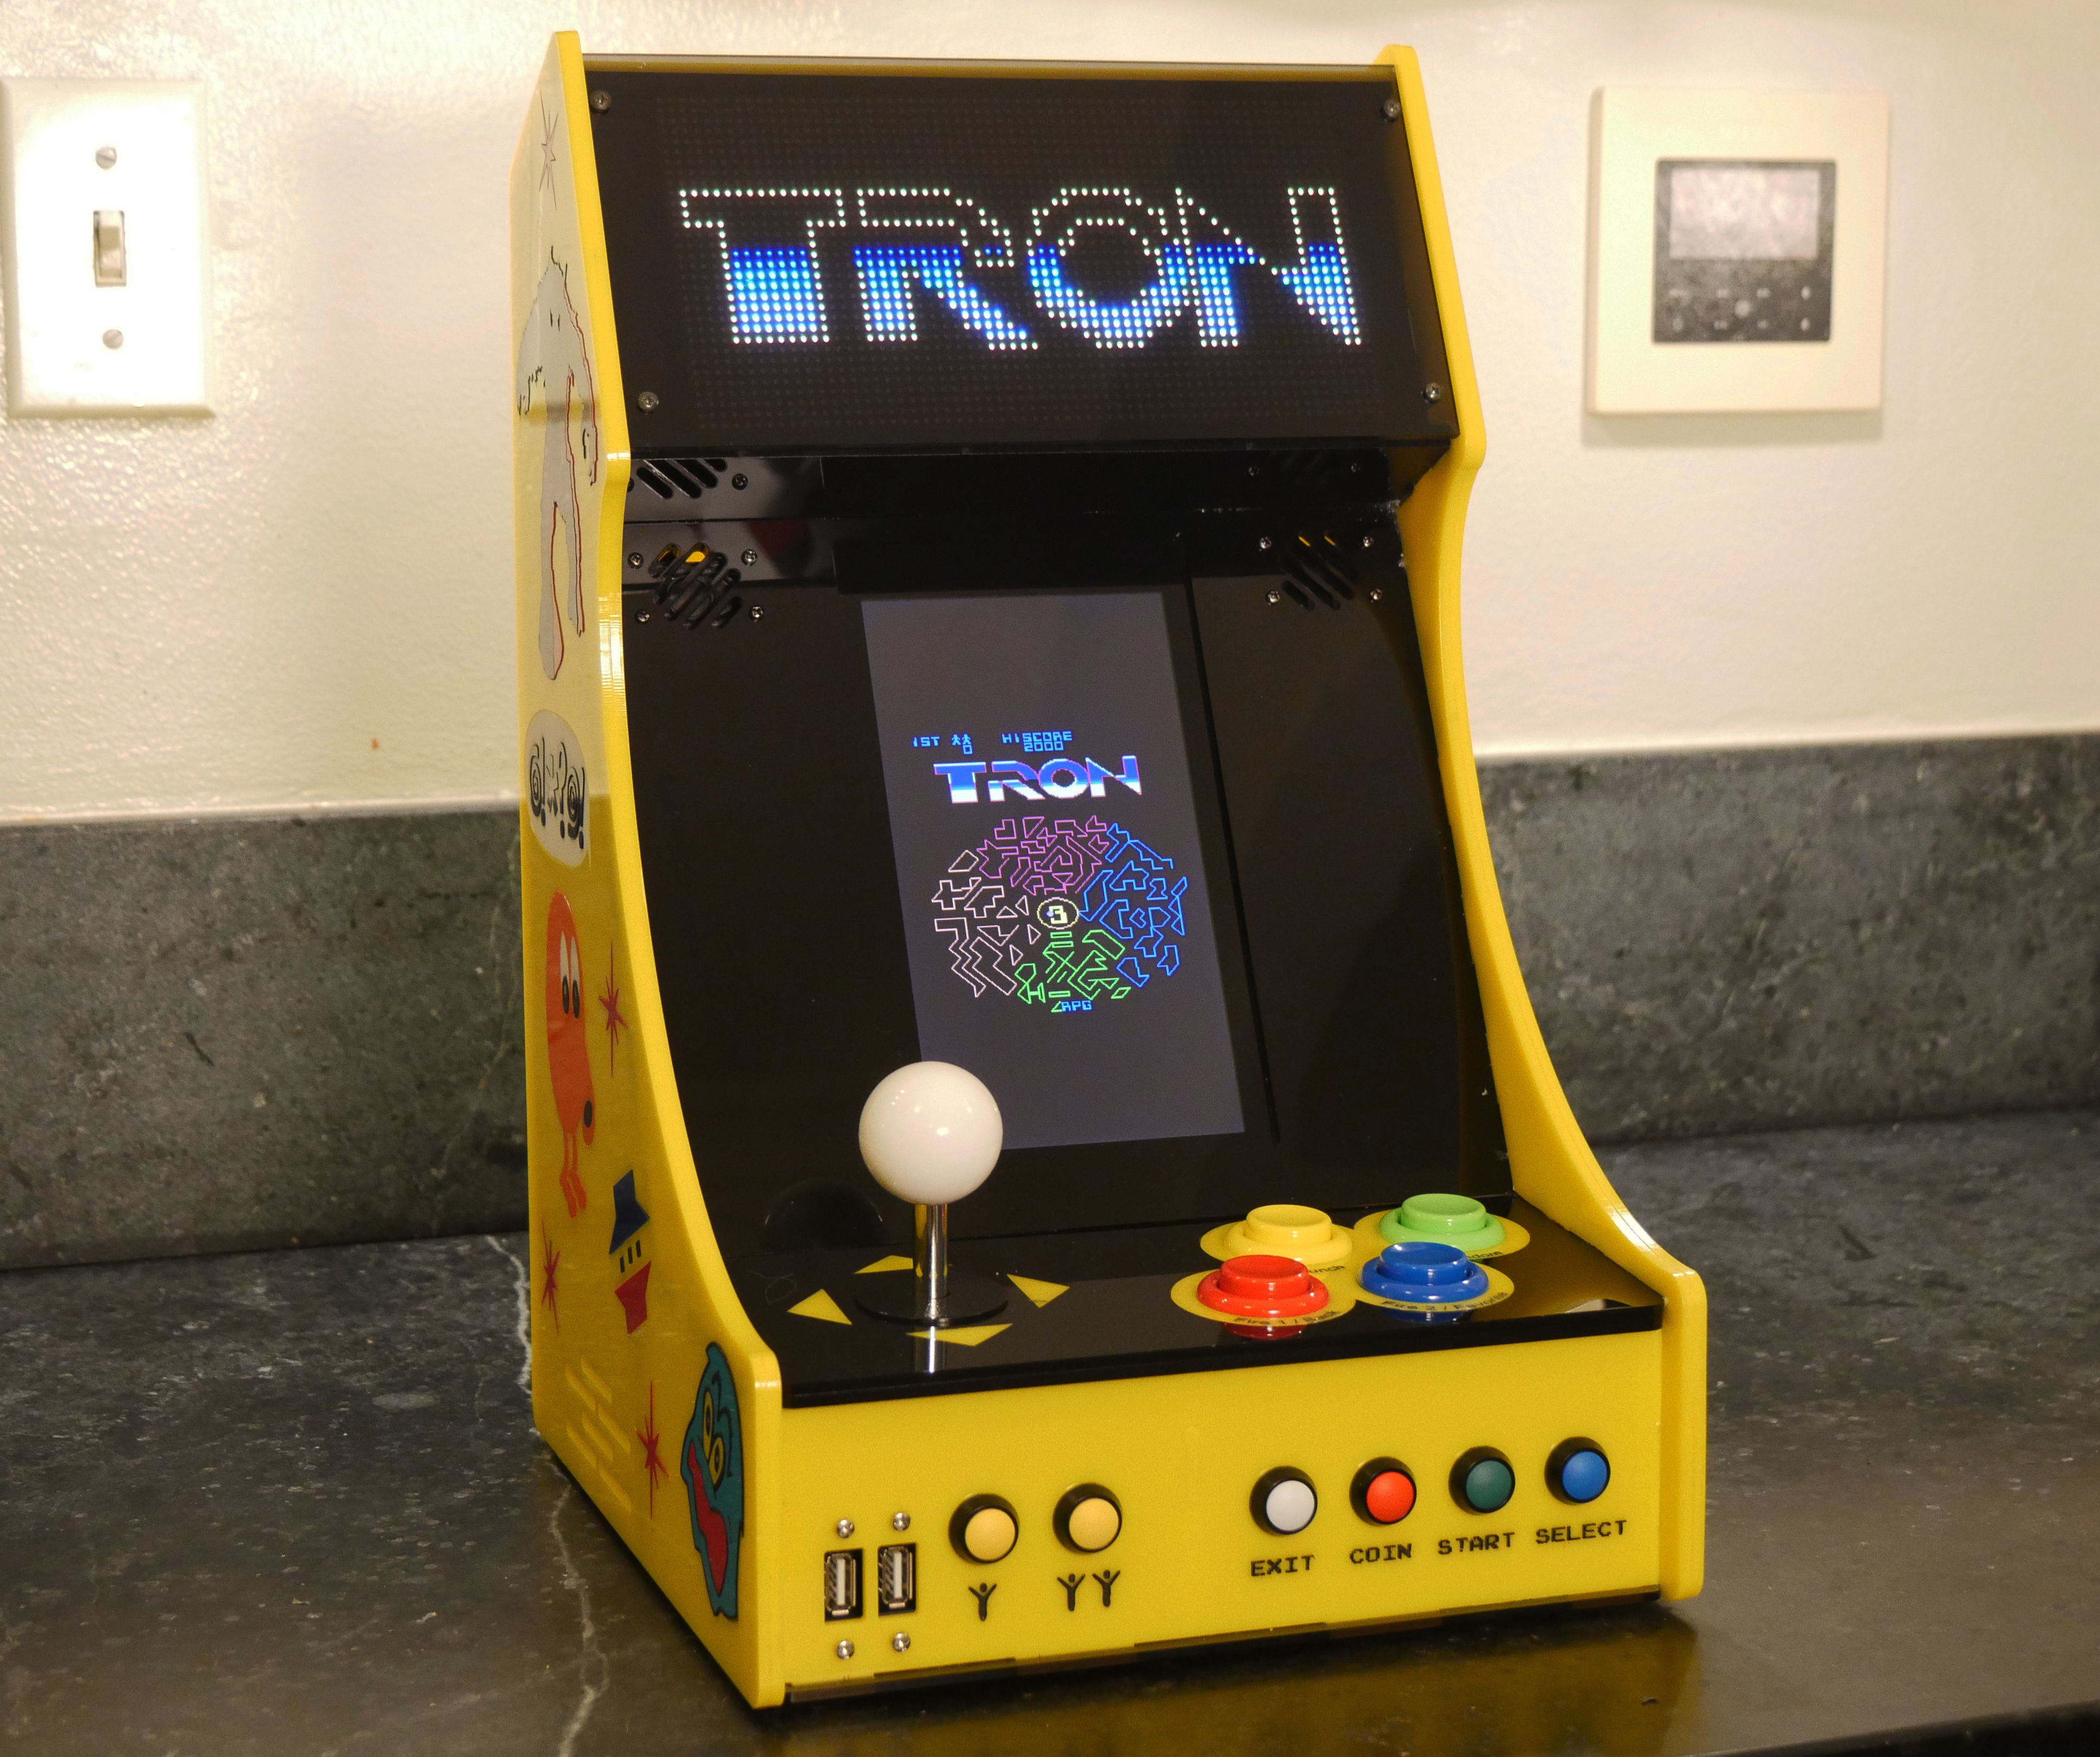 Vertical Bartop Arcade With Integrated PIXEL LED Display